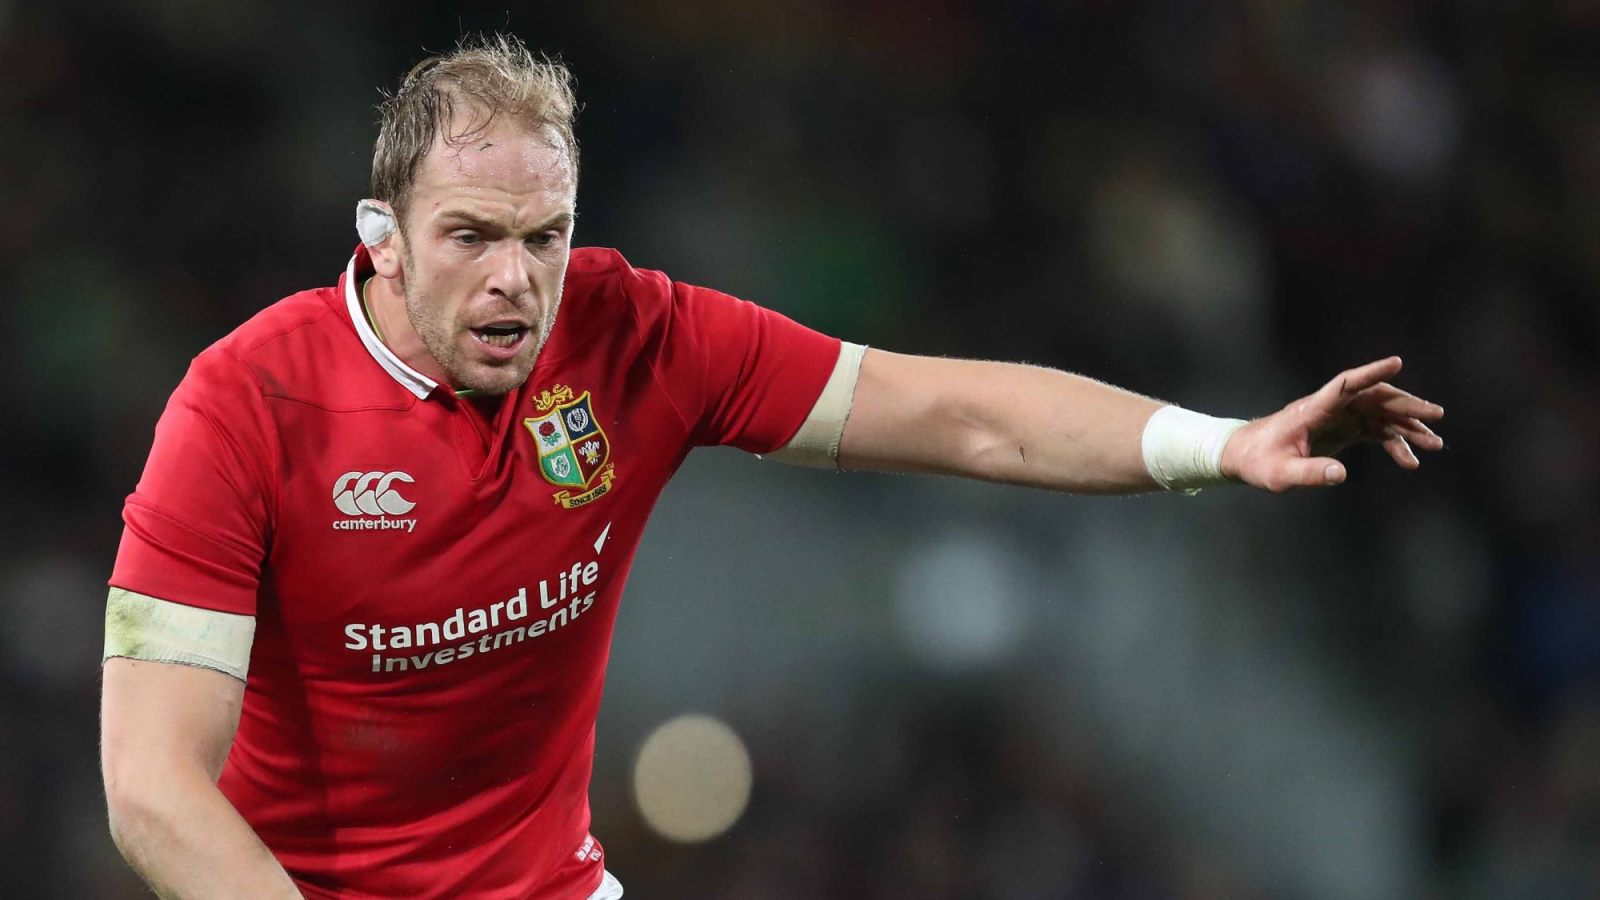 Lions legend Jones to lead Wales against England in Cardiff